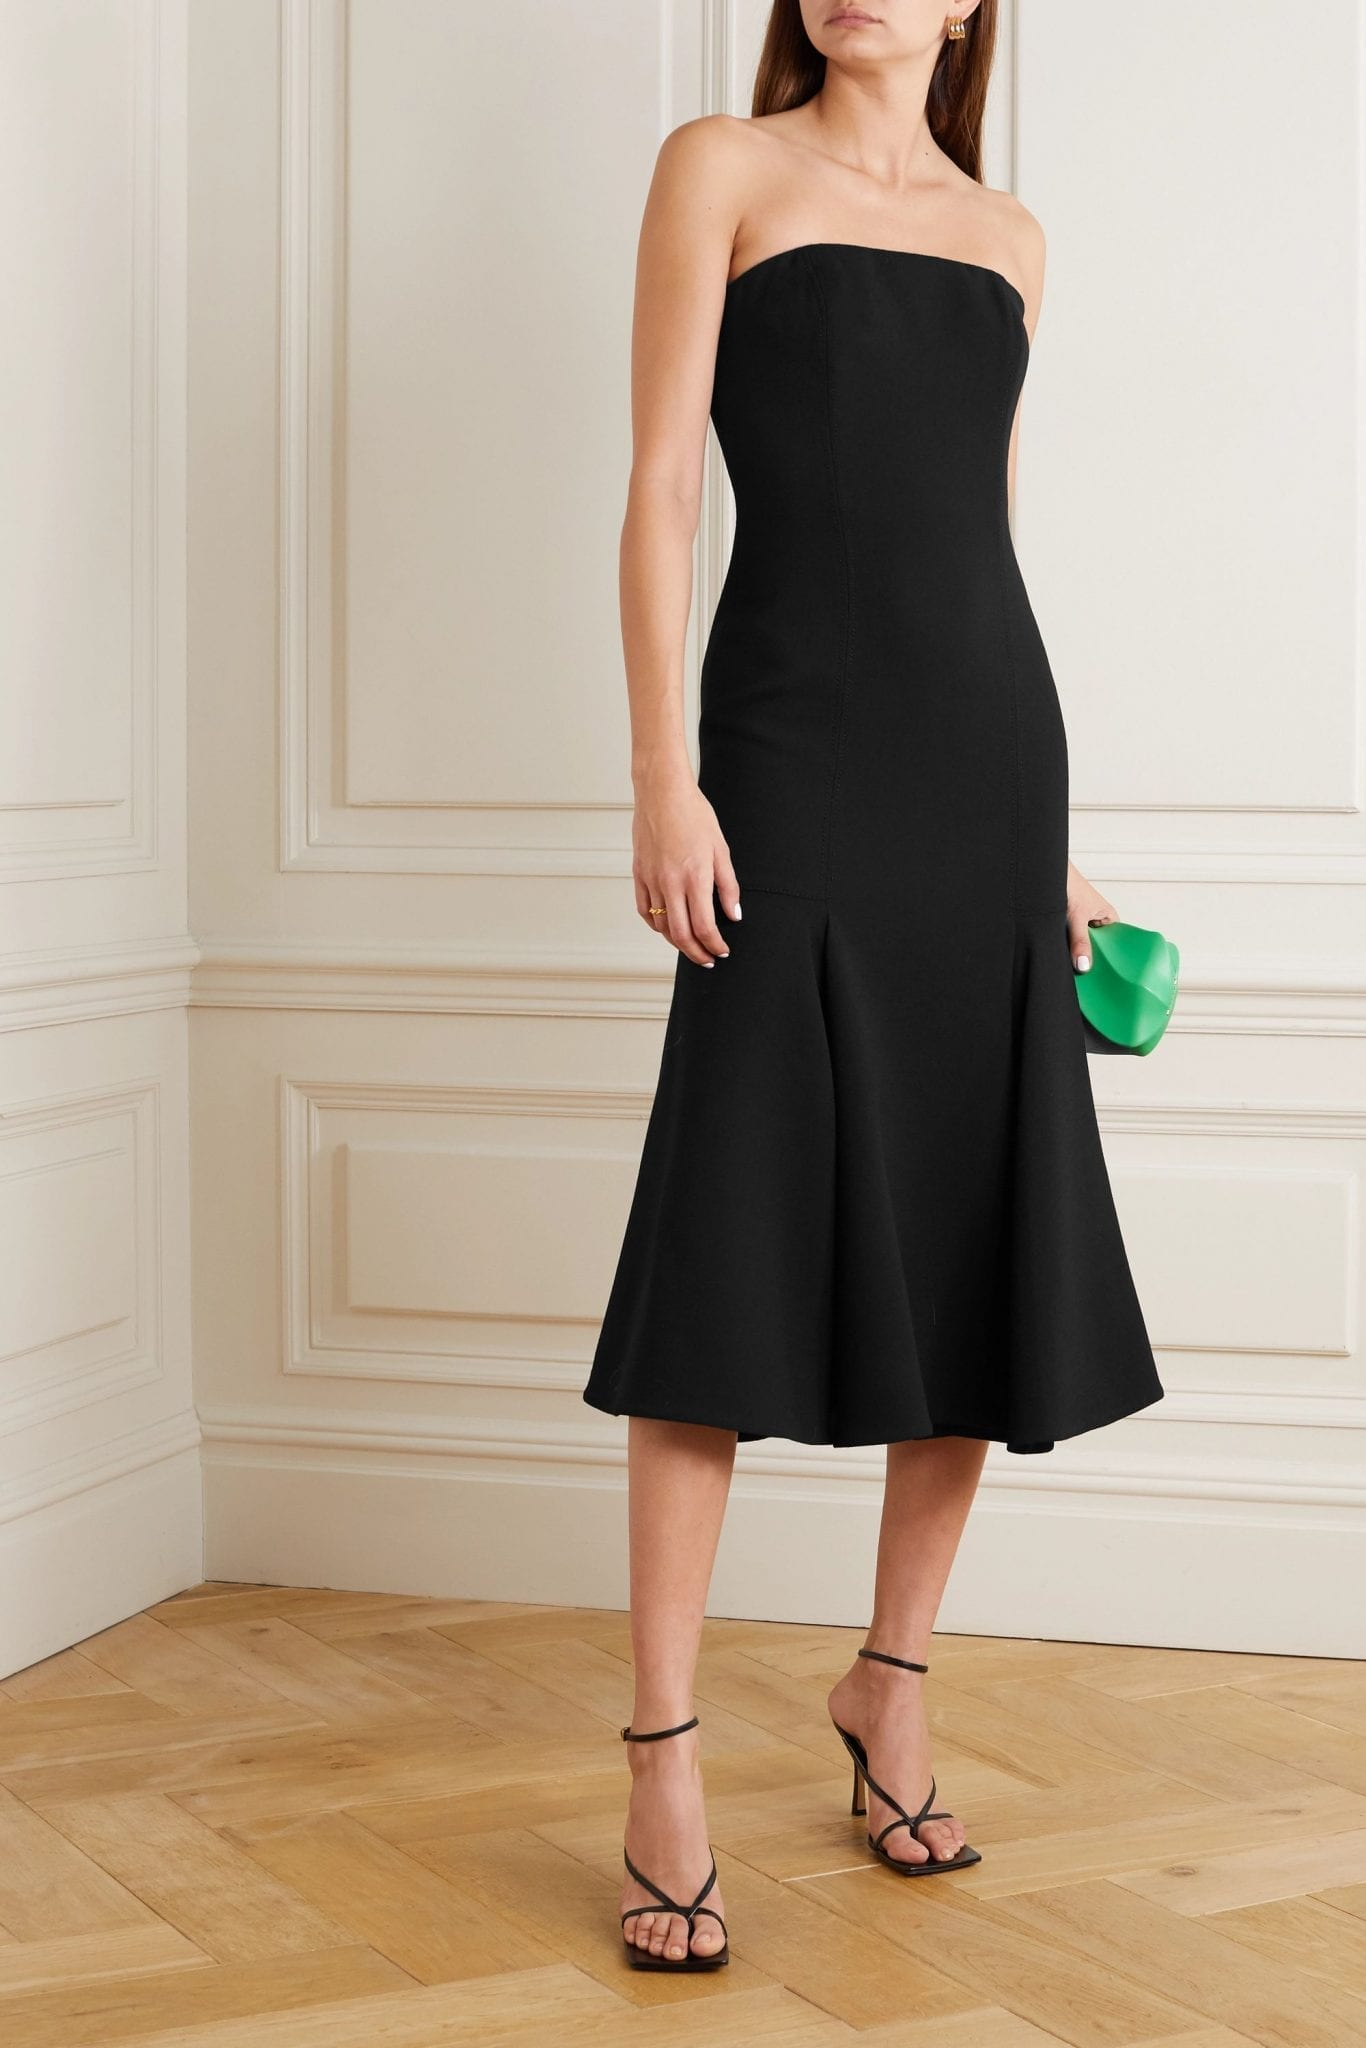 VALENTINO Strapless Wool-blend Crepe Midi Dress